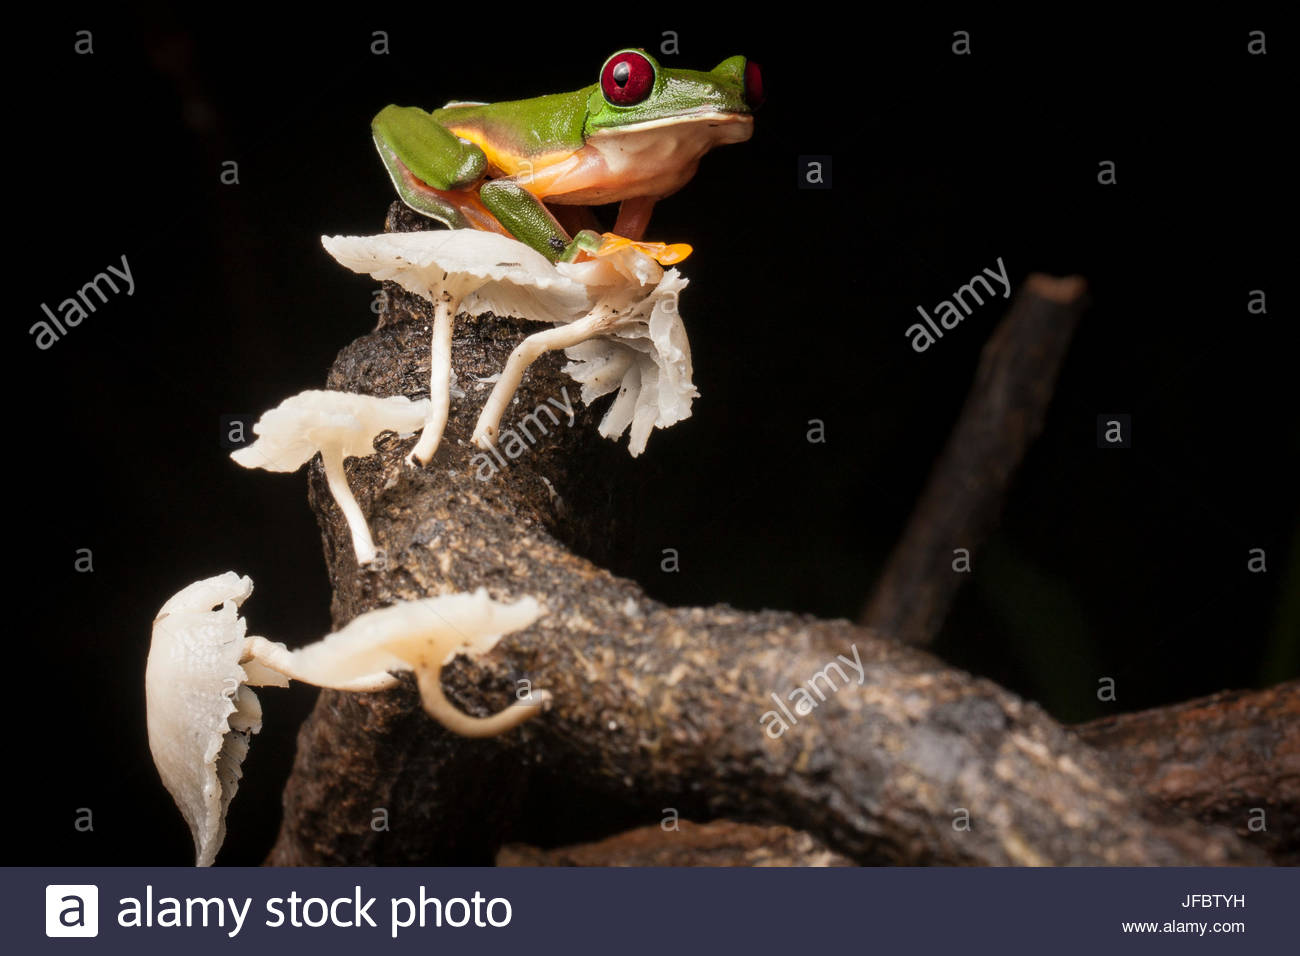 Portrait of a gliding tree frog, Agalychnis spurrelli, with mushrooms. - Stock Image